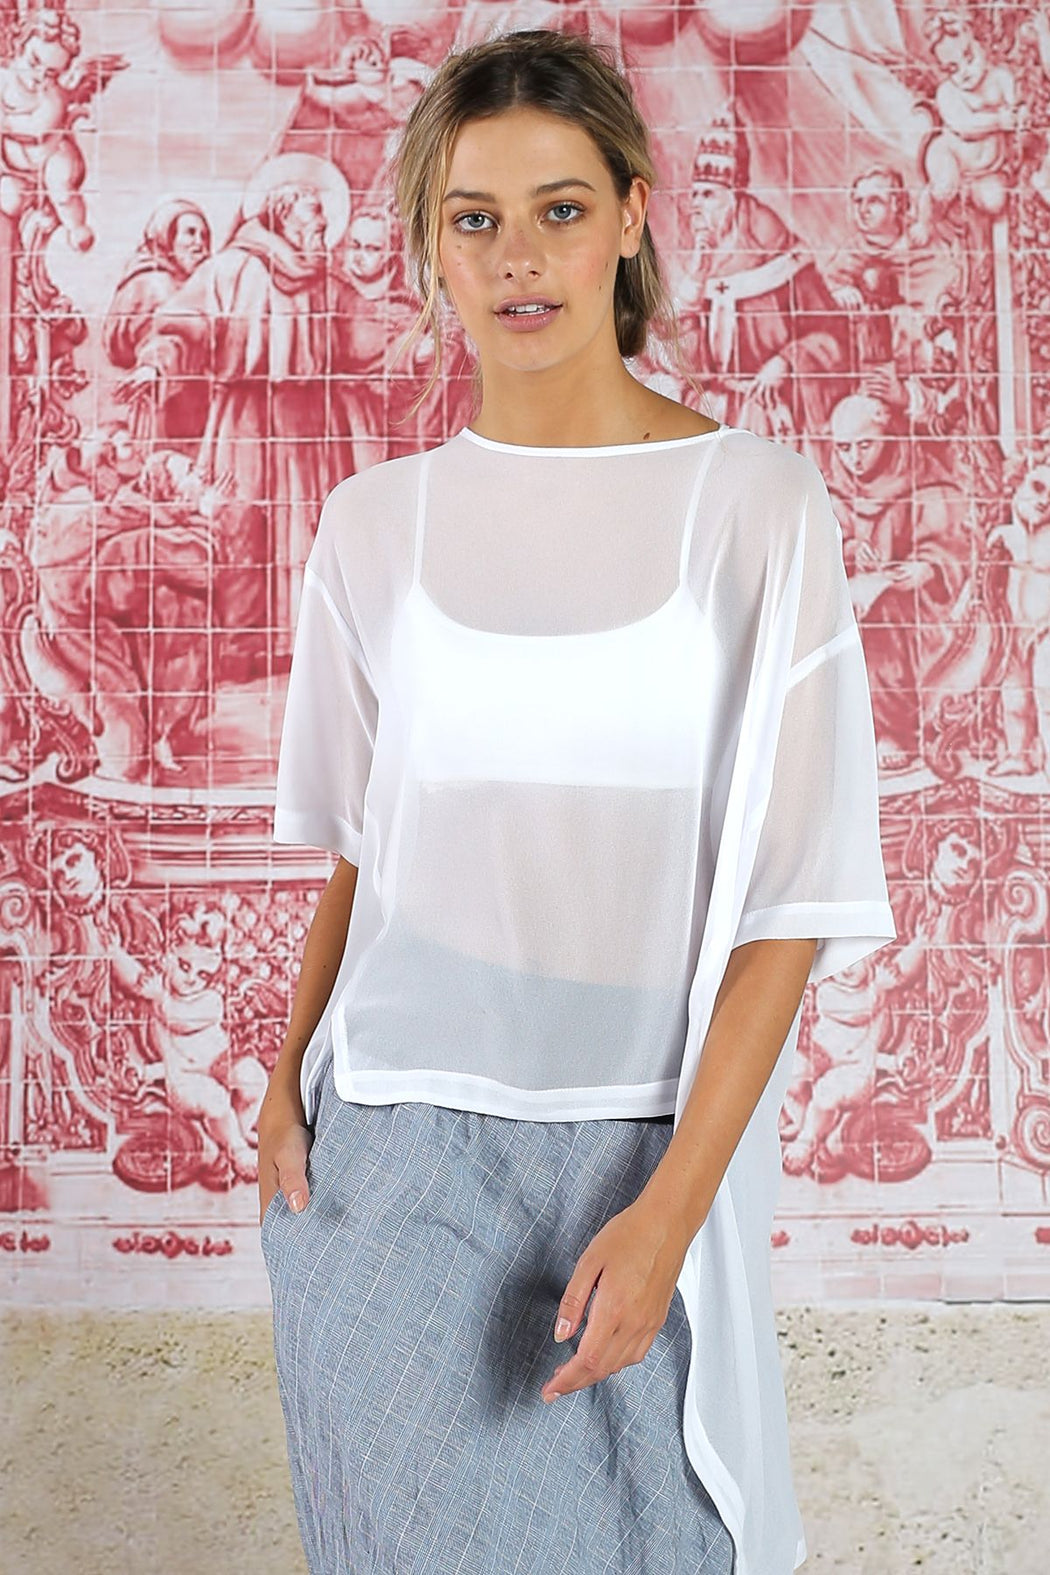 Curate Hilo Kitty Top - White | Shop Curate at Wallace & Gibbs NZ